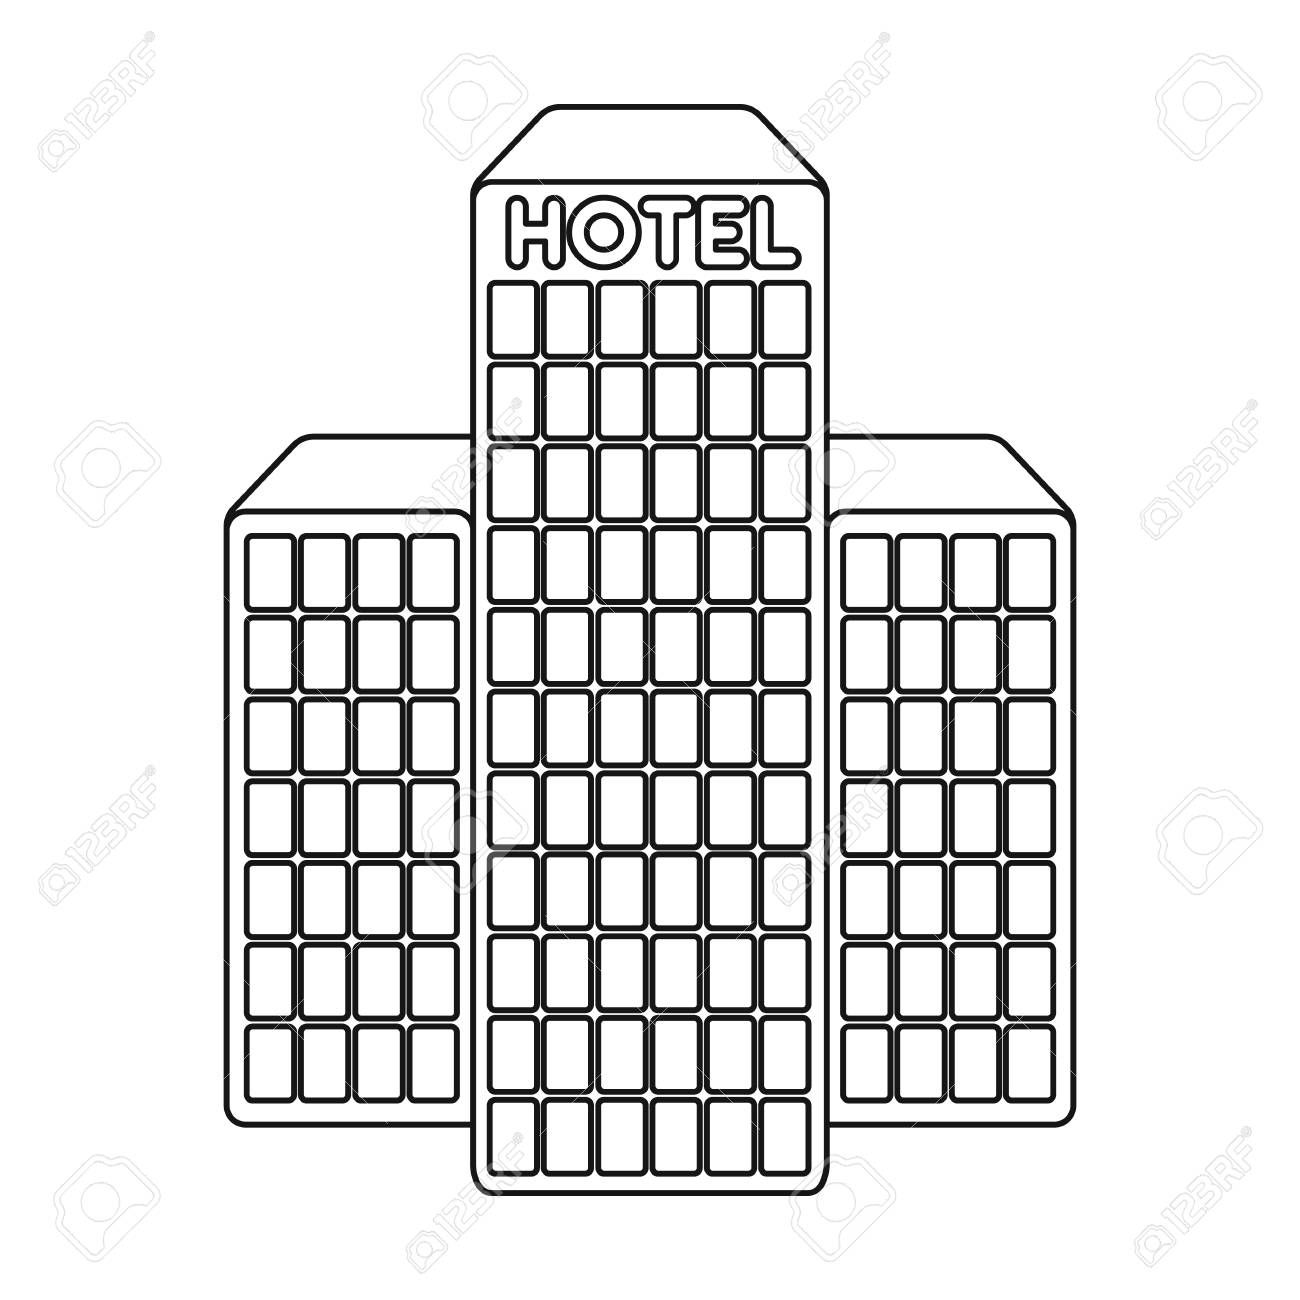 Hotel Building Icon In Outline Style Isolated On White Background Arab Emirates Symbol Vector Illustration